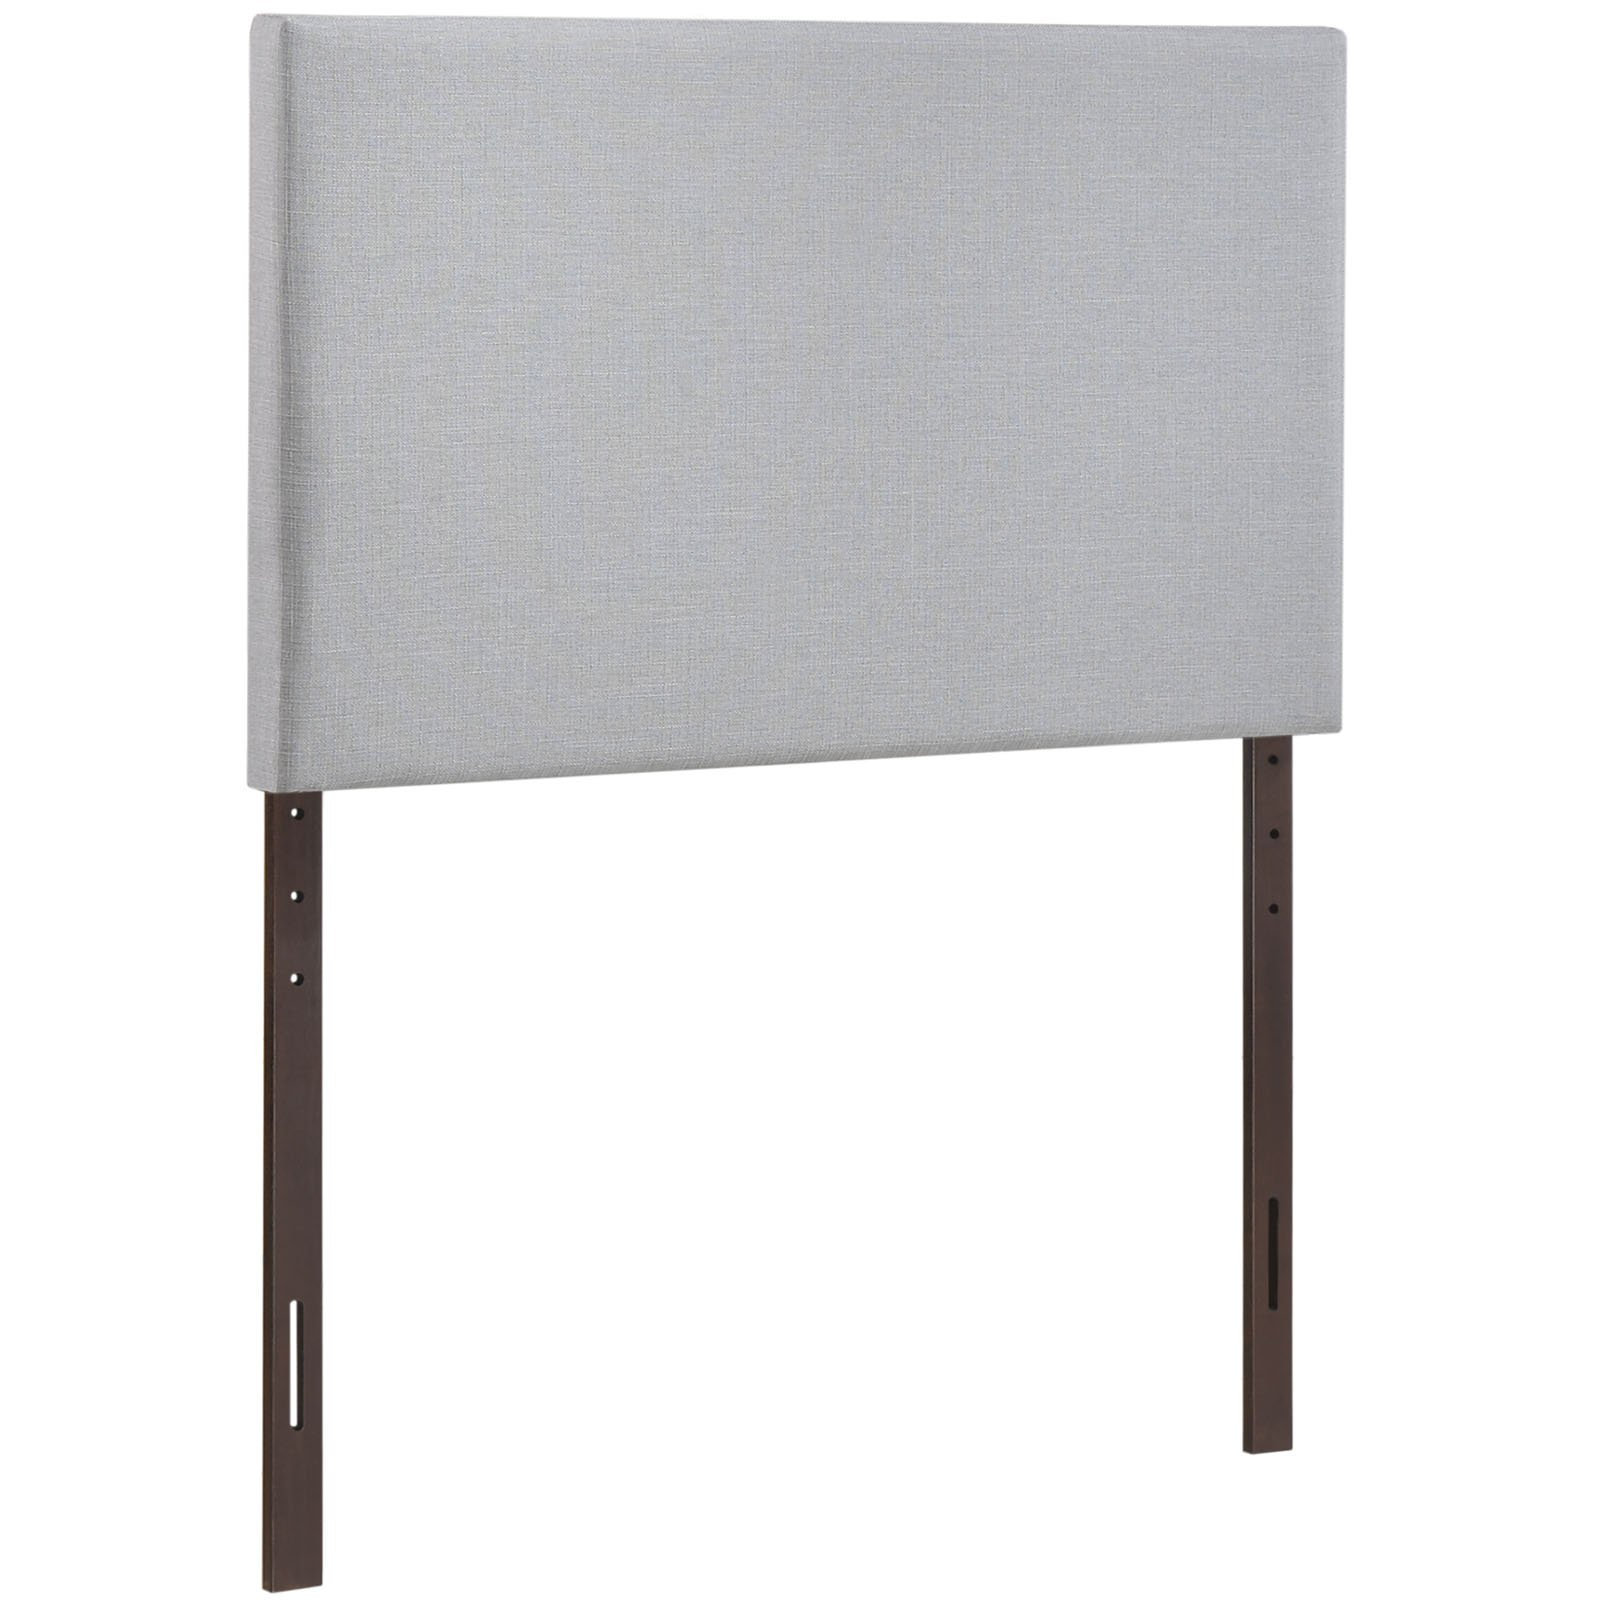 Modway Region Twin Upholstered Linen Headboard in Gray by Modway (Image #3)